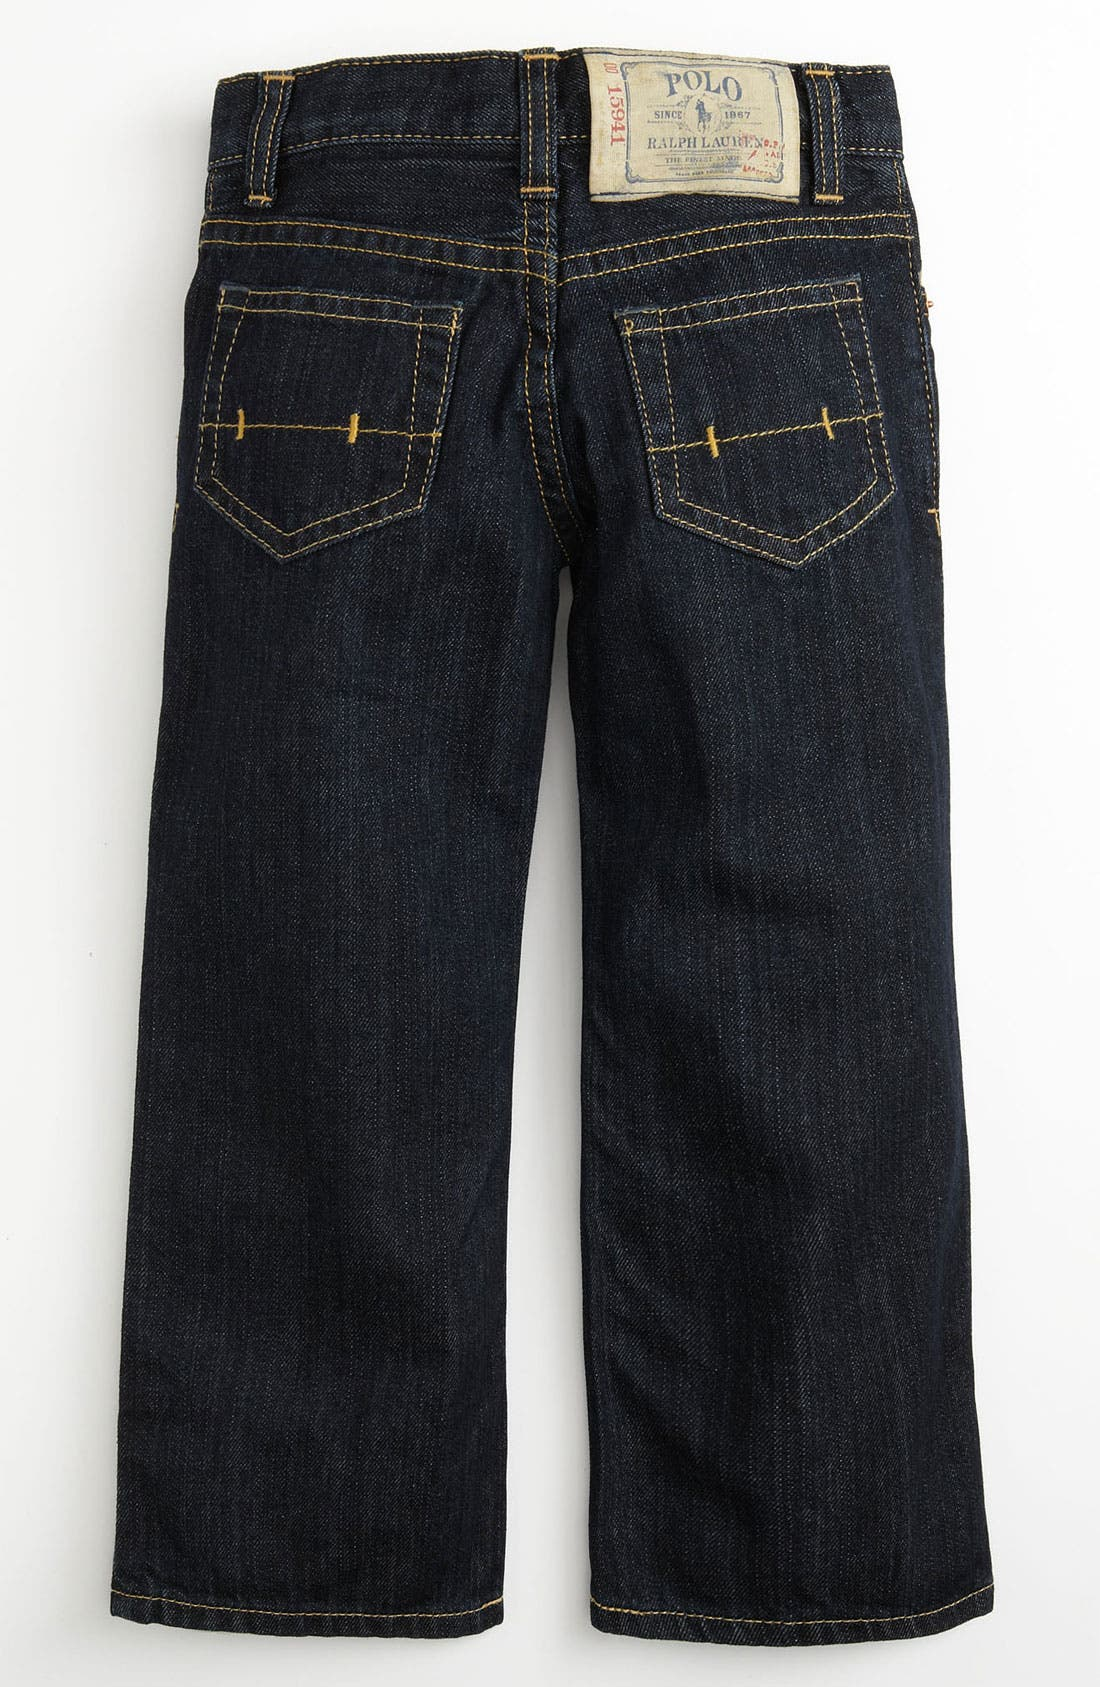 Alternate Image 1 Selected - Ralph Lauren Skinny Leg Jeans (Toddler)